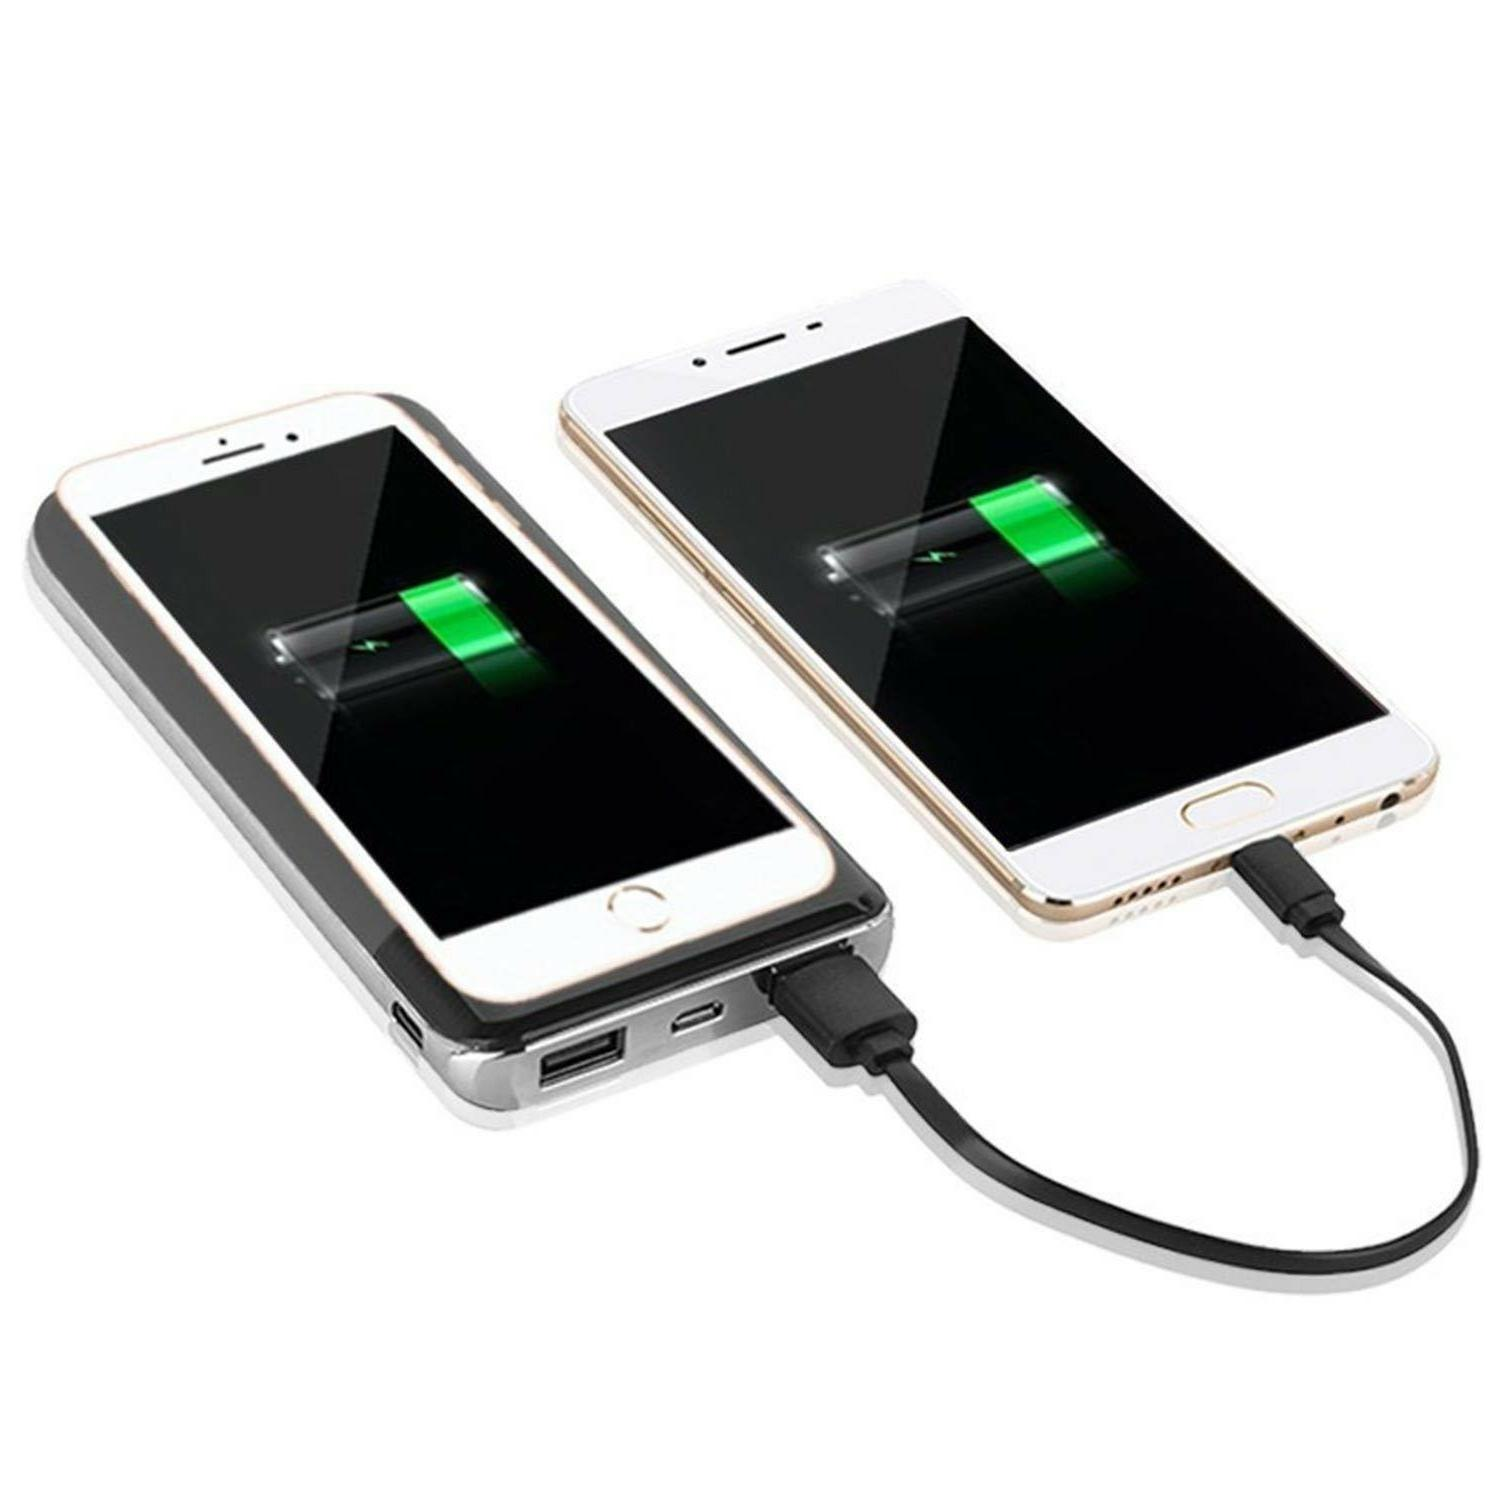 CoverON Wireless USB Power Charger for LG ThinQ /